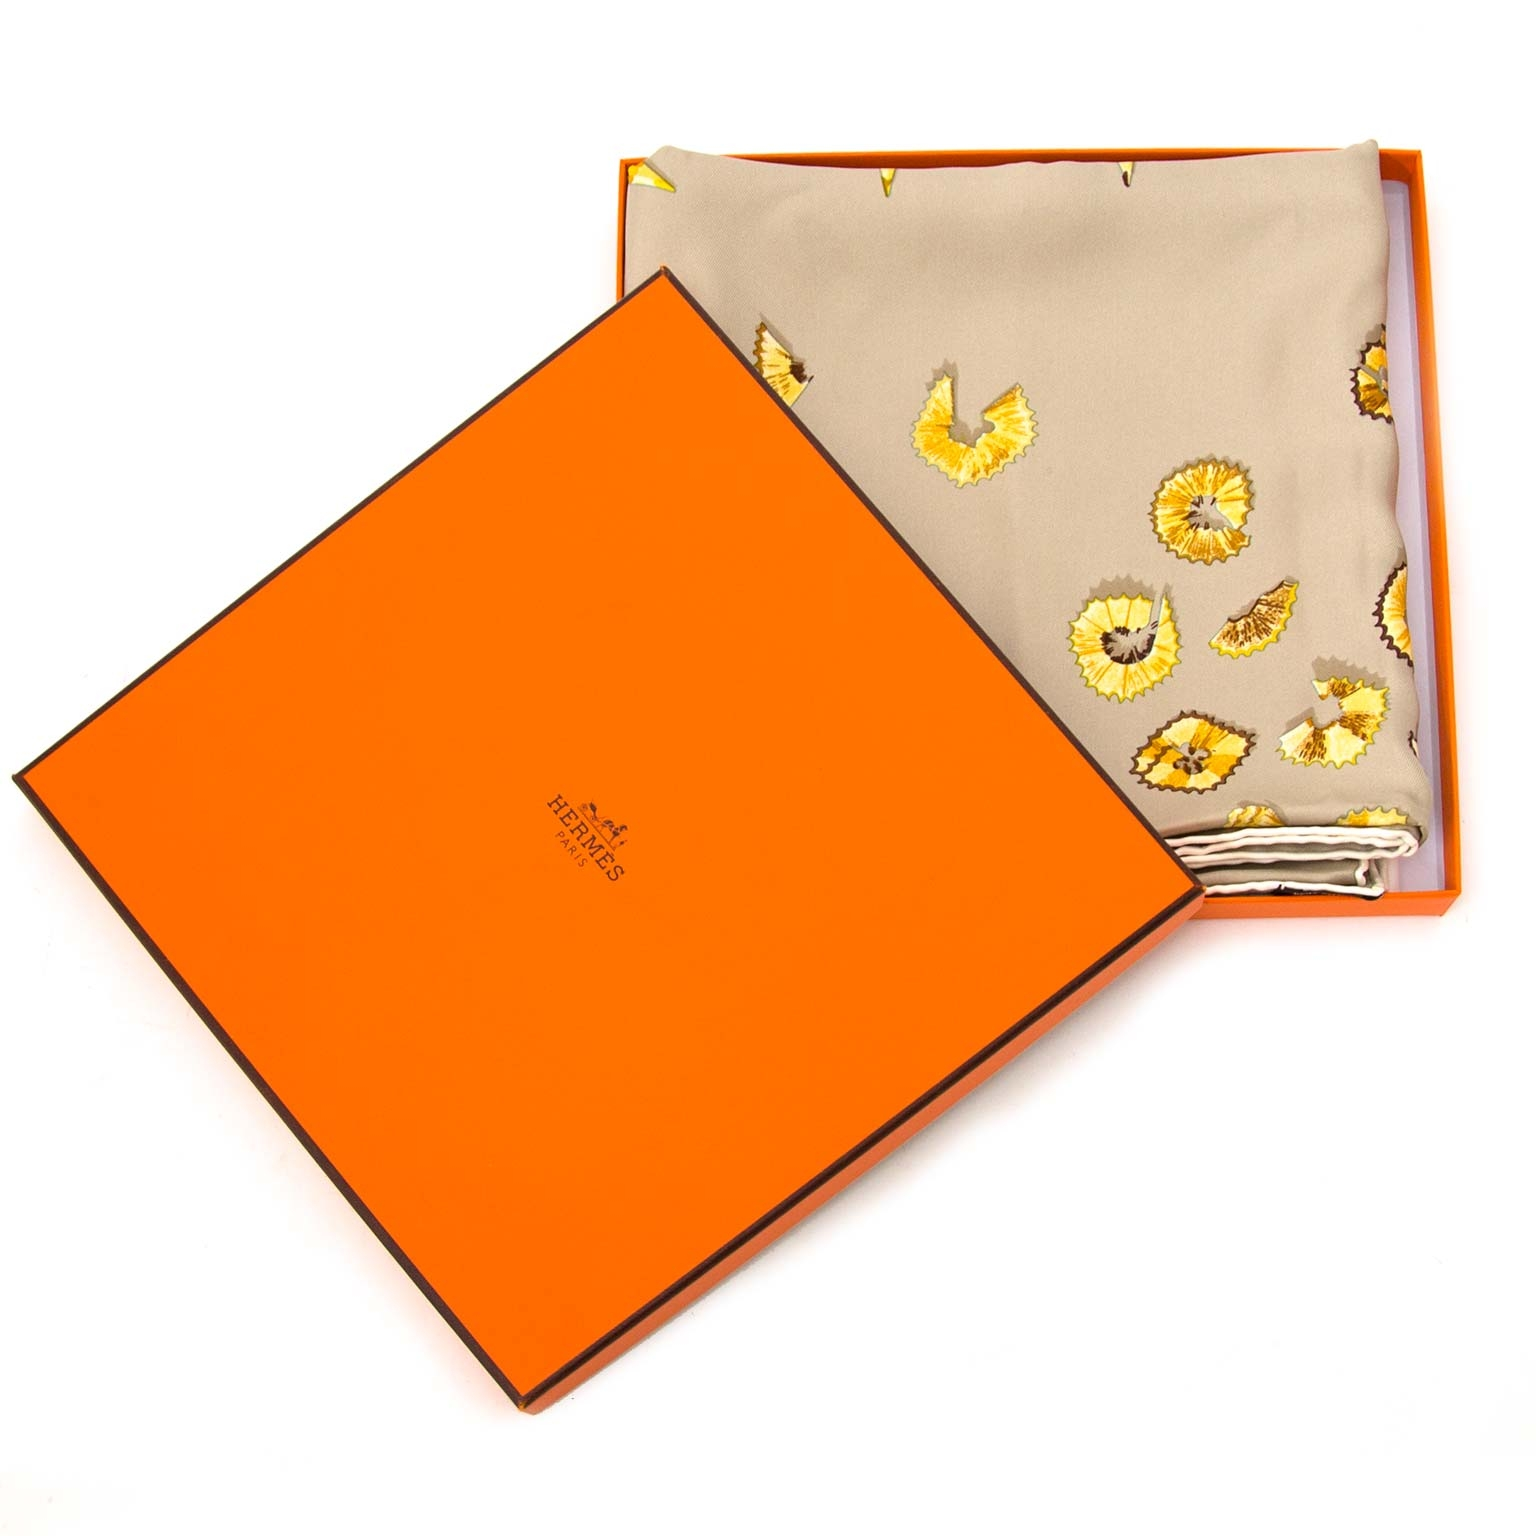 looking for a Hermès scarf A Vos Crayons? Now online at labellov.com for the best price